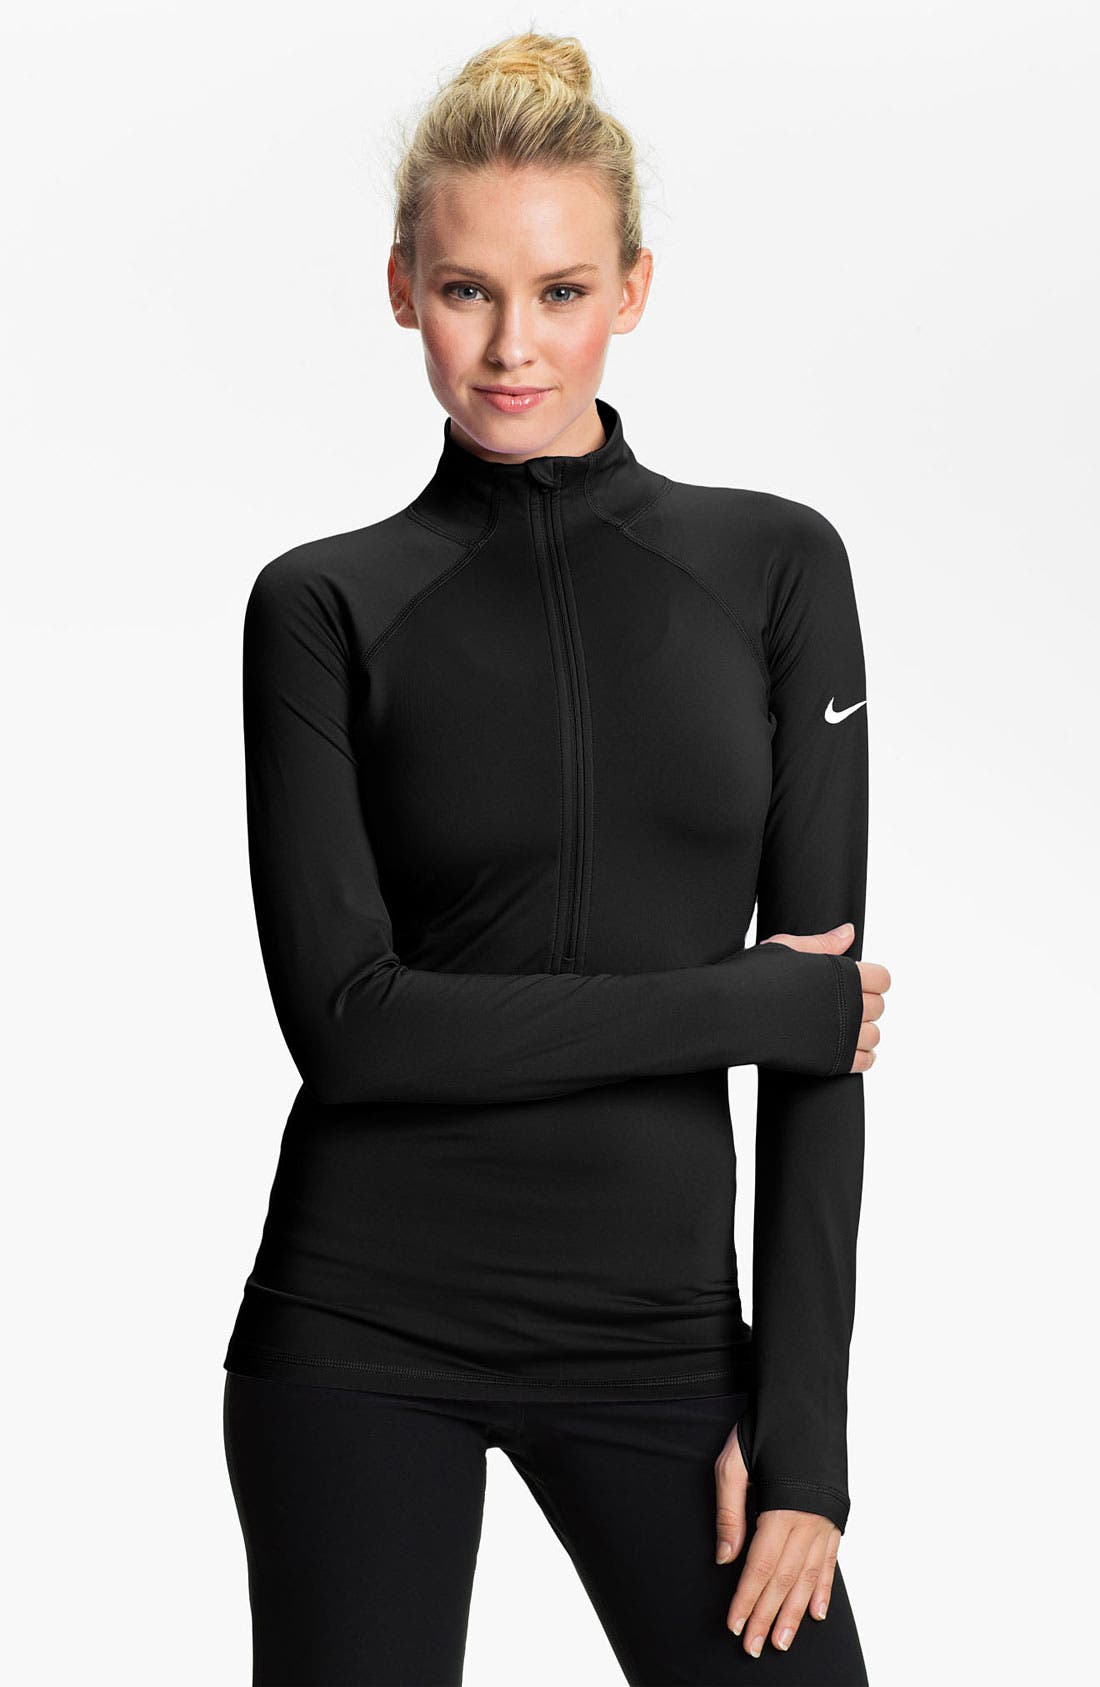 Alternate Image 1 Selected - Nike 'Pro Hyperwarm' Half Zip Top